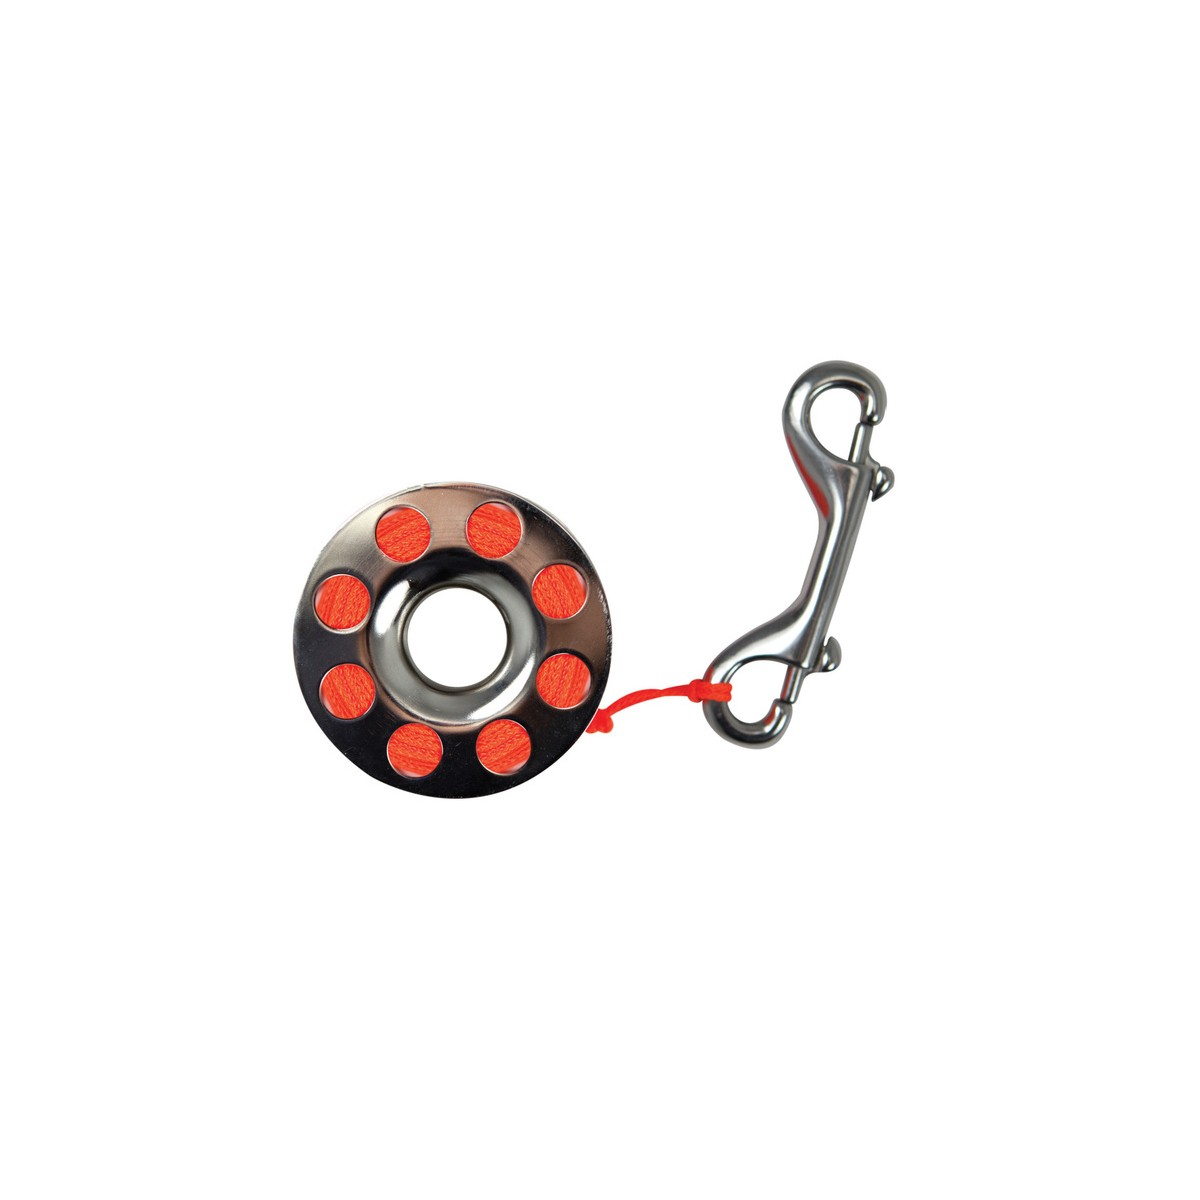 XS Scuba Stainless Steel Finger Spools